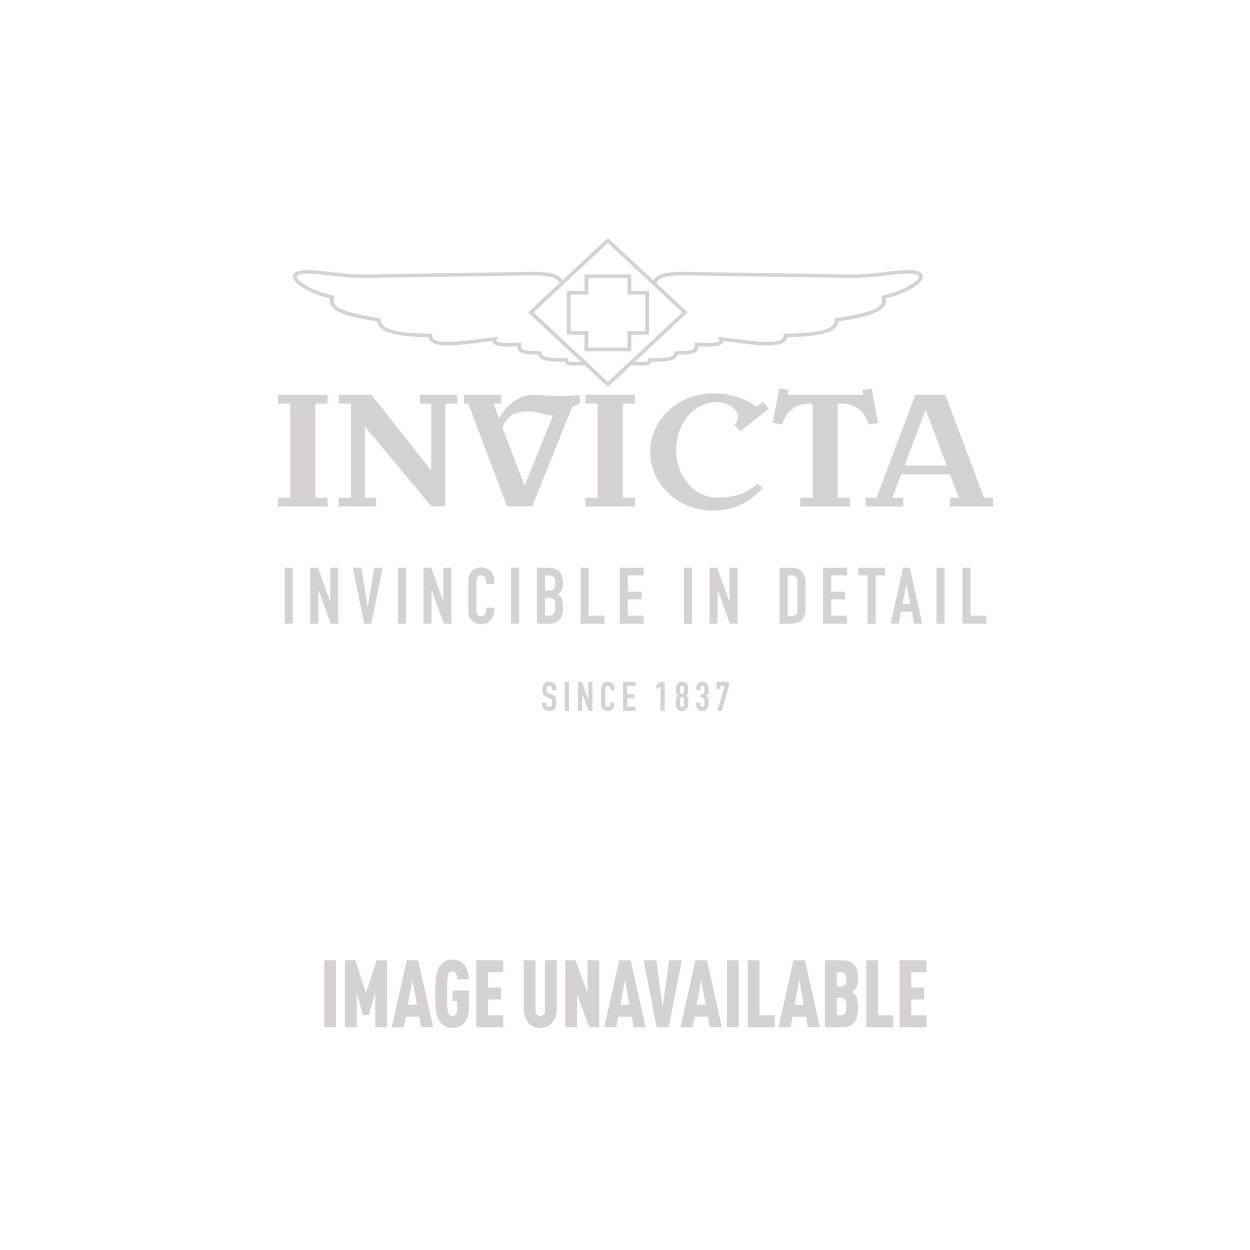 Invicta Specialty Quartz Watch - Gold case with Gold tone Stainless Steel band - Model 19241